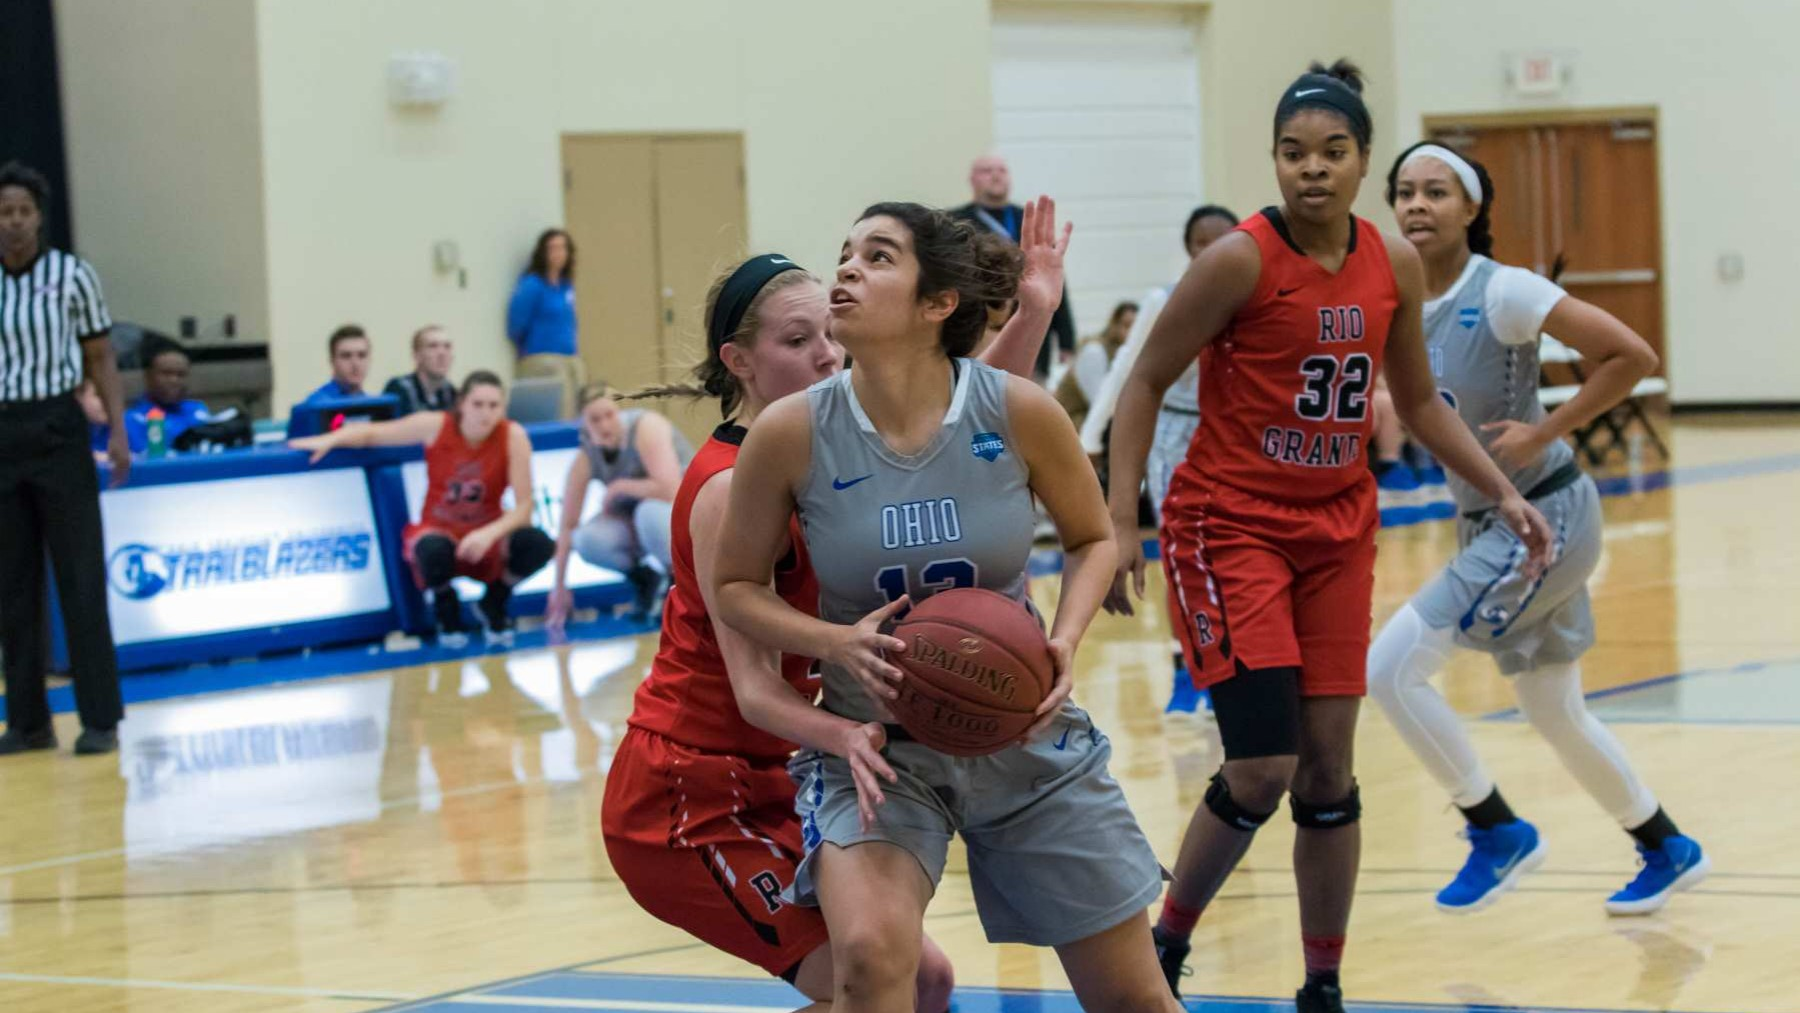 Fourth Quarter Hurts OCU In Loss At Midway image